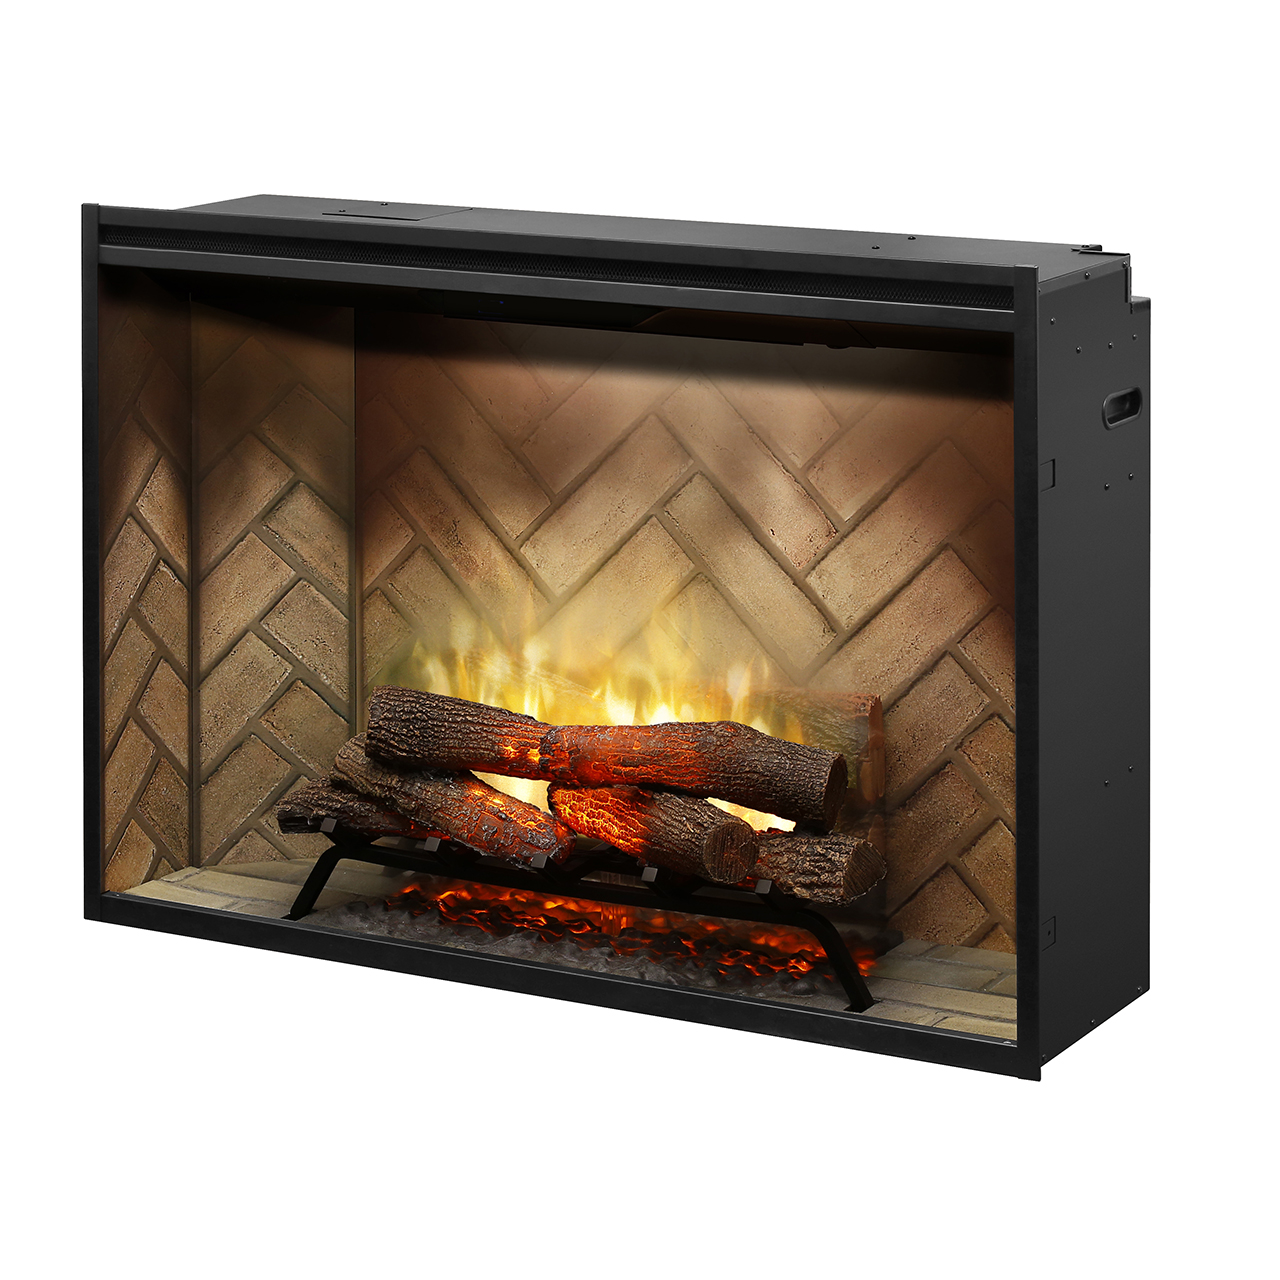 "Dimplex RBF42 Revillusion 42"" Built-In Electric Firebox"